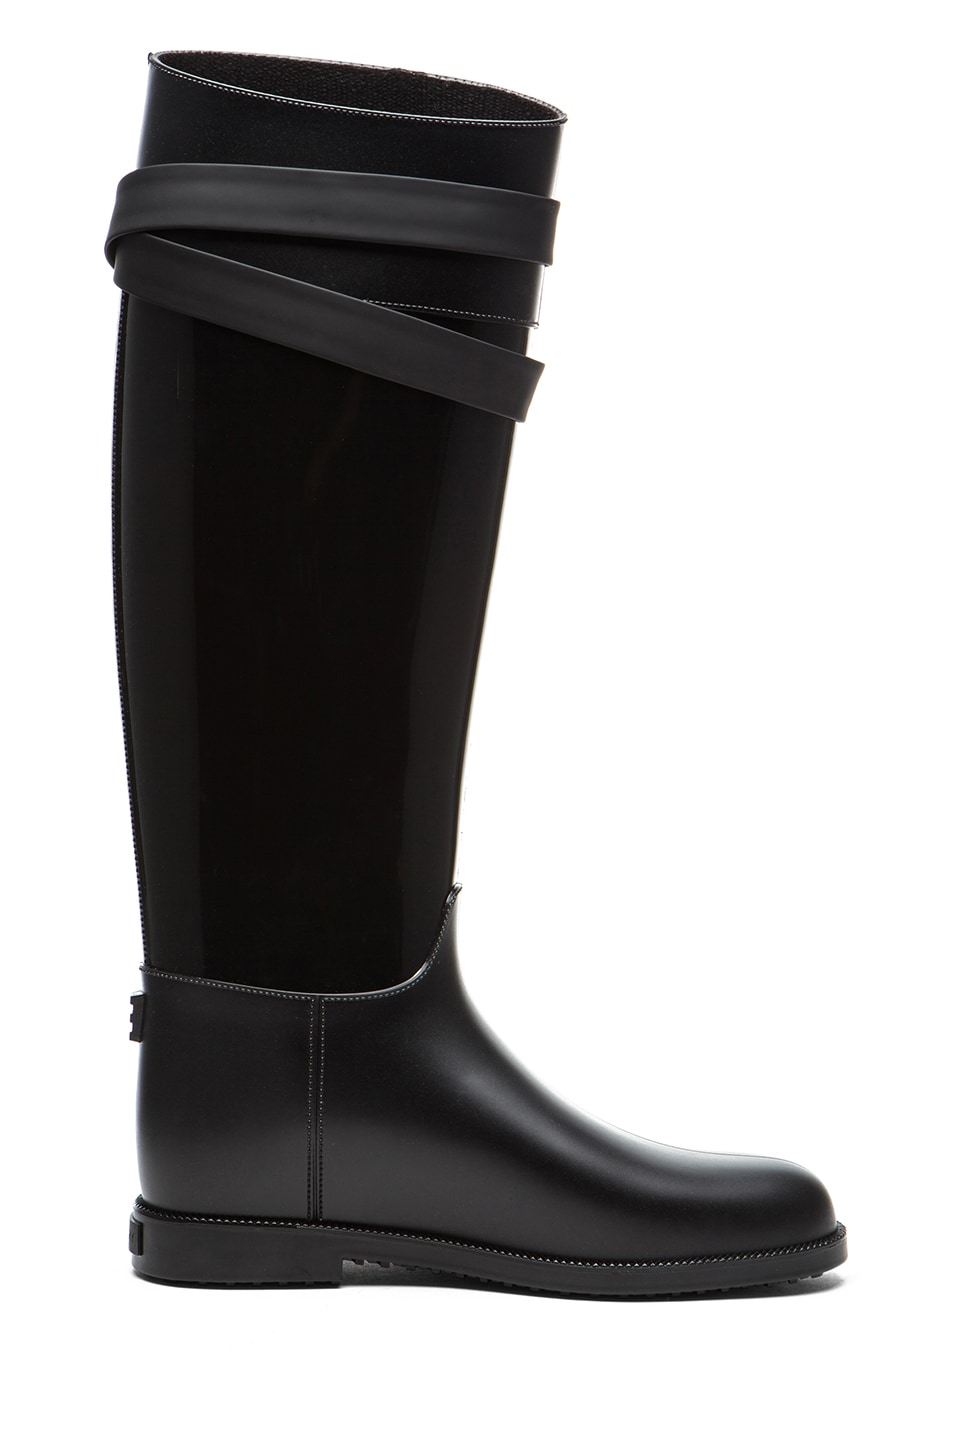 Image 5 of GIVENCHY Rider Shark Lock Rubber Rain Boot in Black